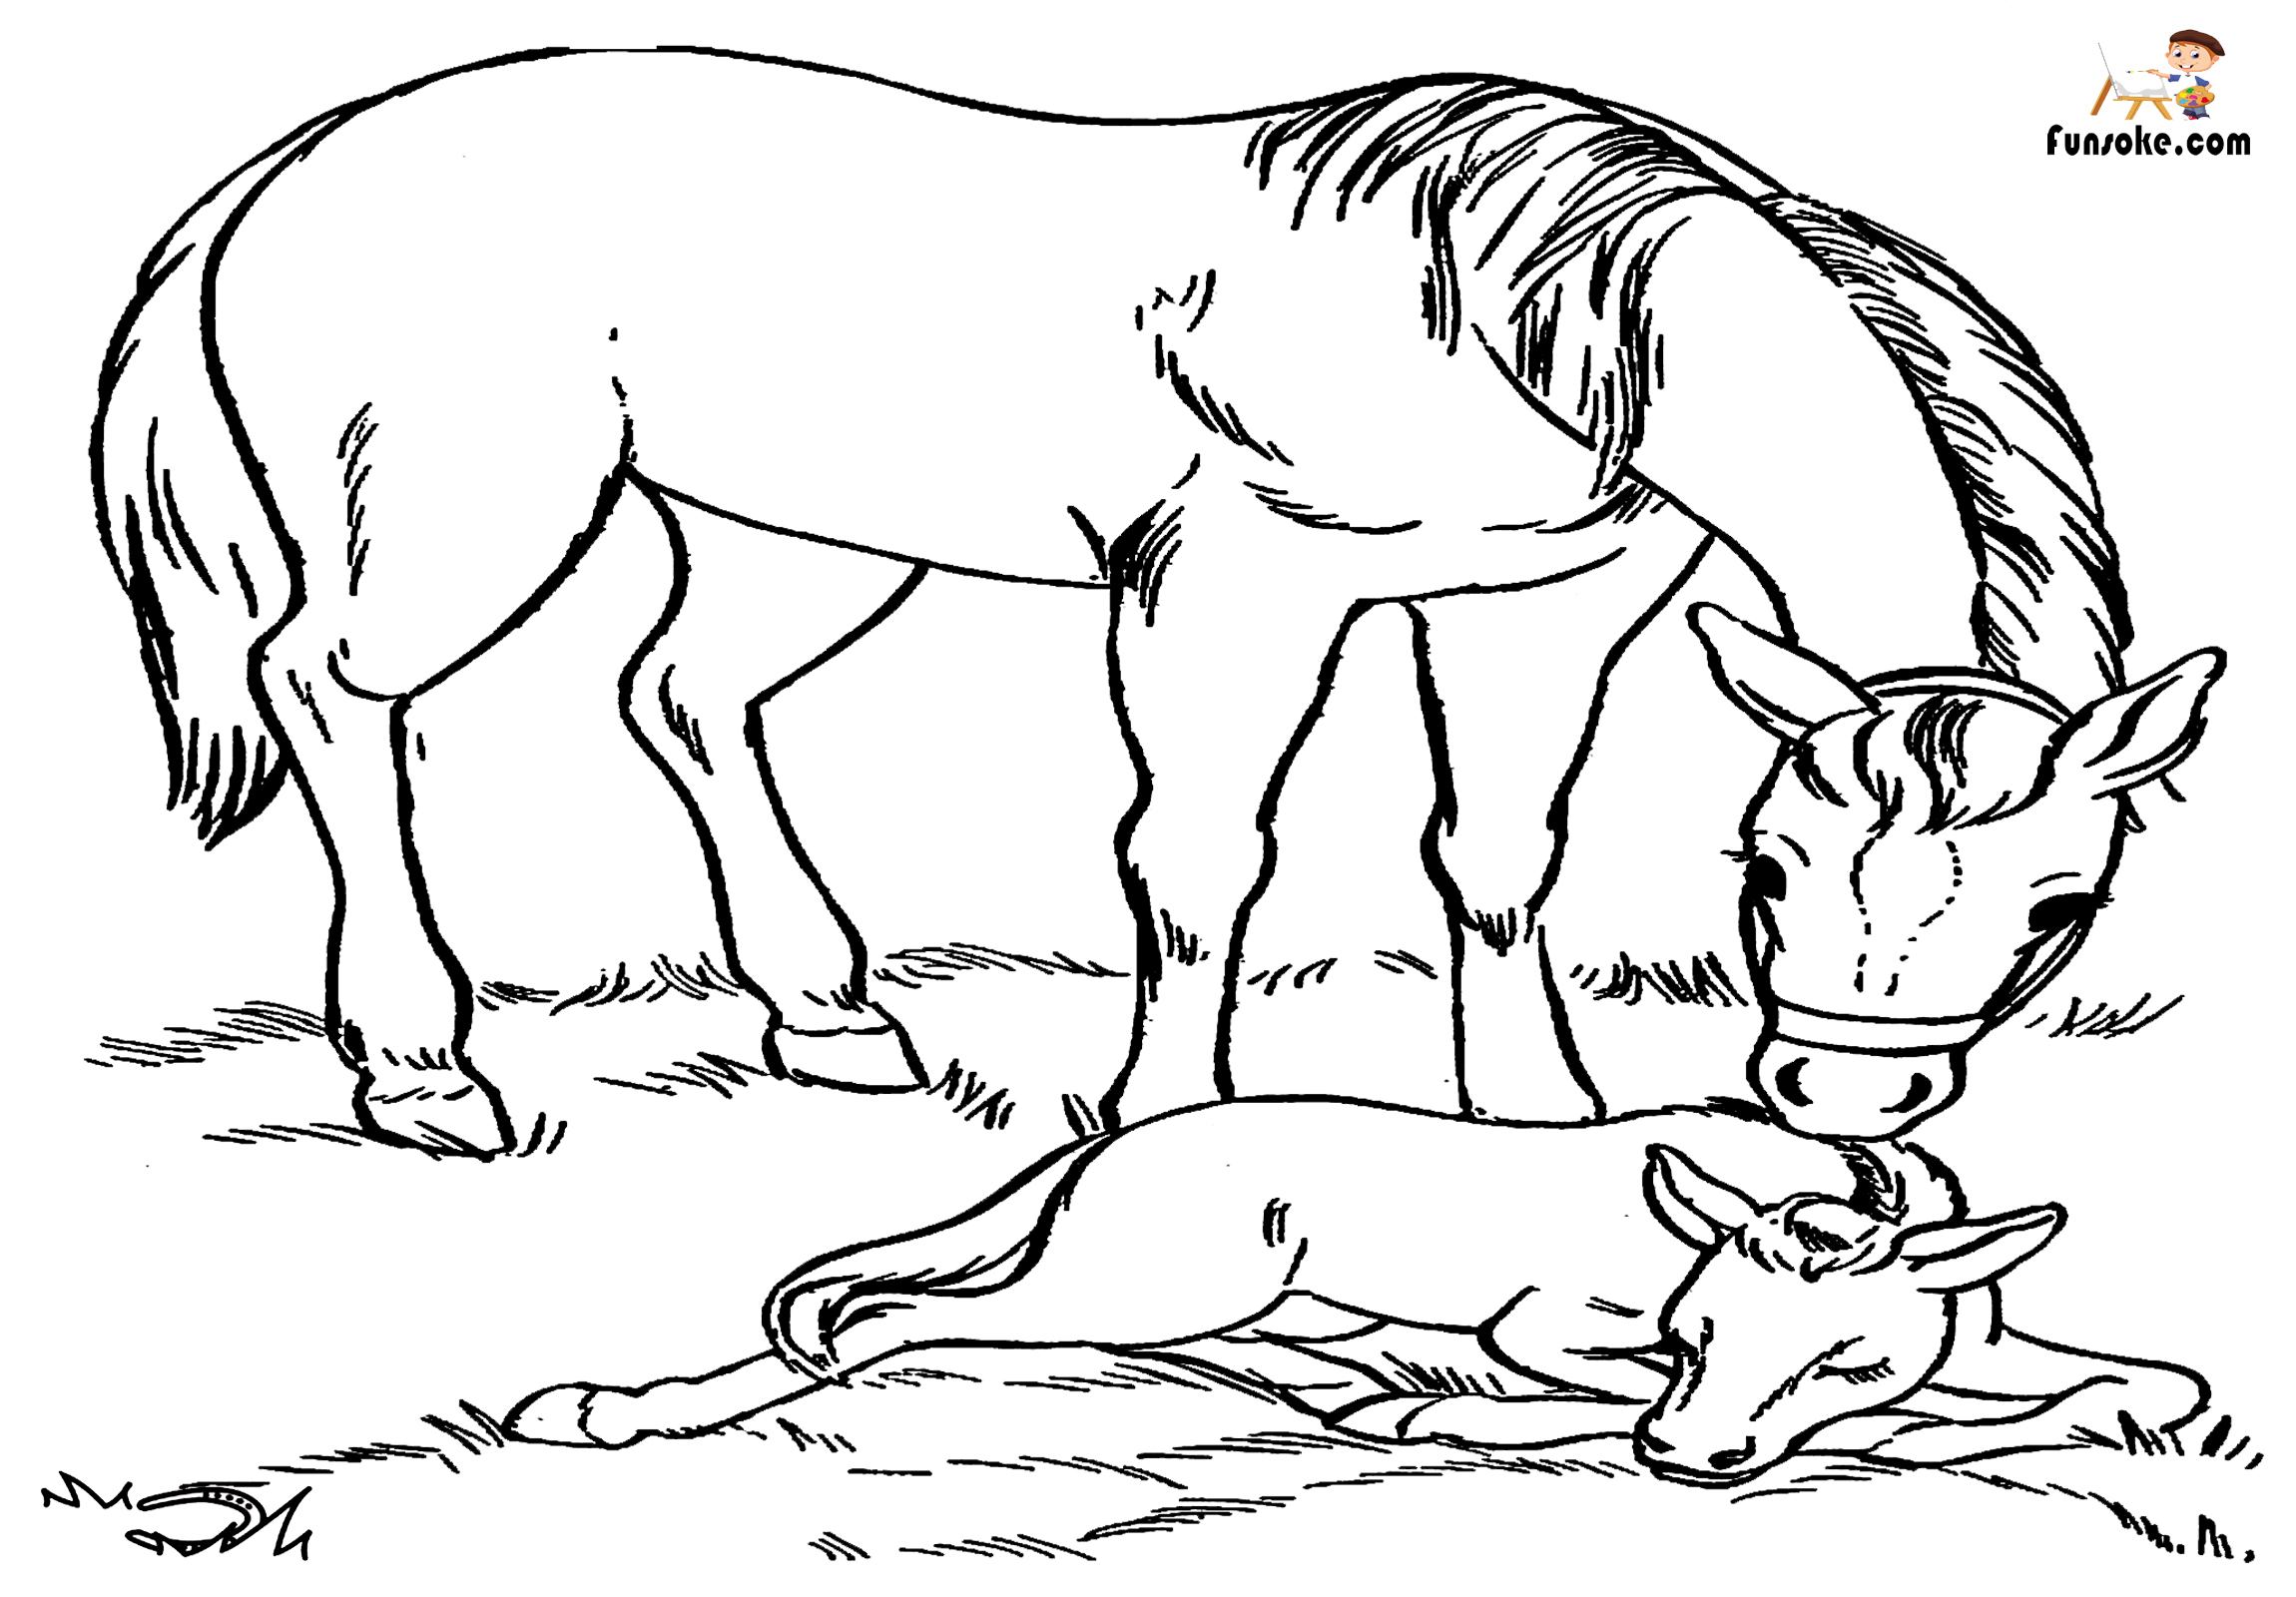 horse pages to color horse coloring pages for kids coloring pages for kids to color horse pages